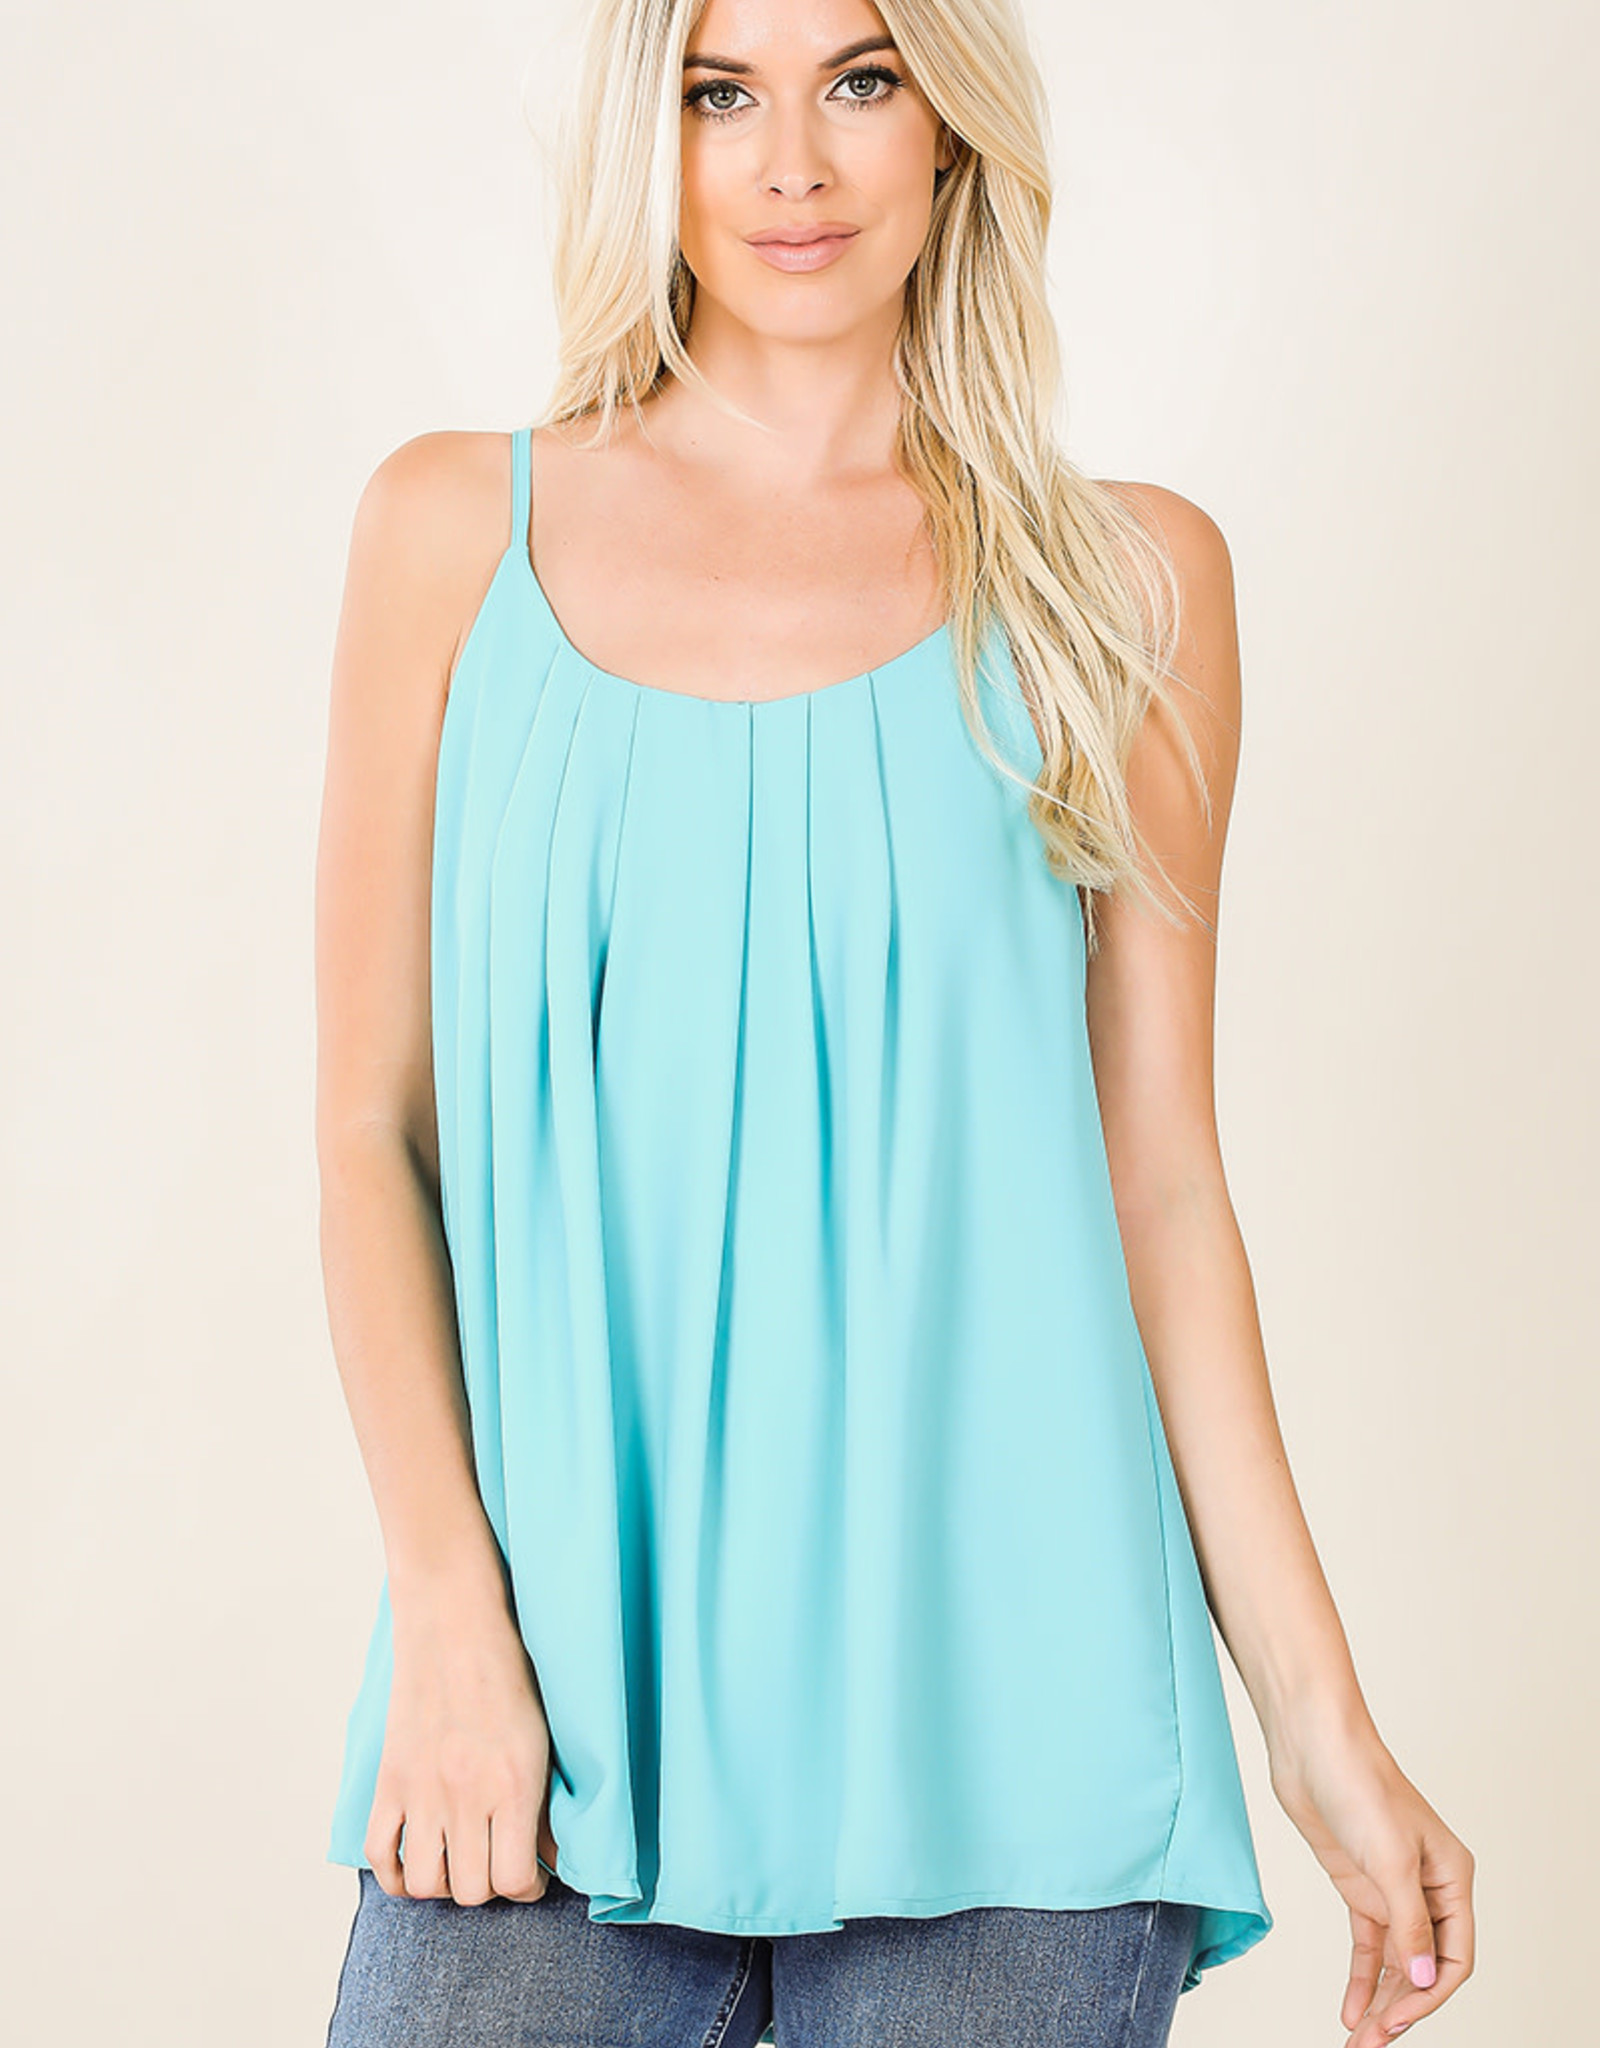 Dobby Pleated Spaghetti Cami w/ Adjustable Straps